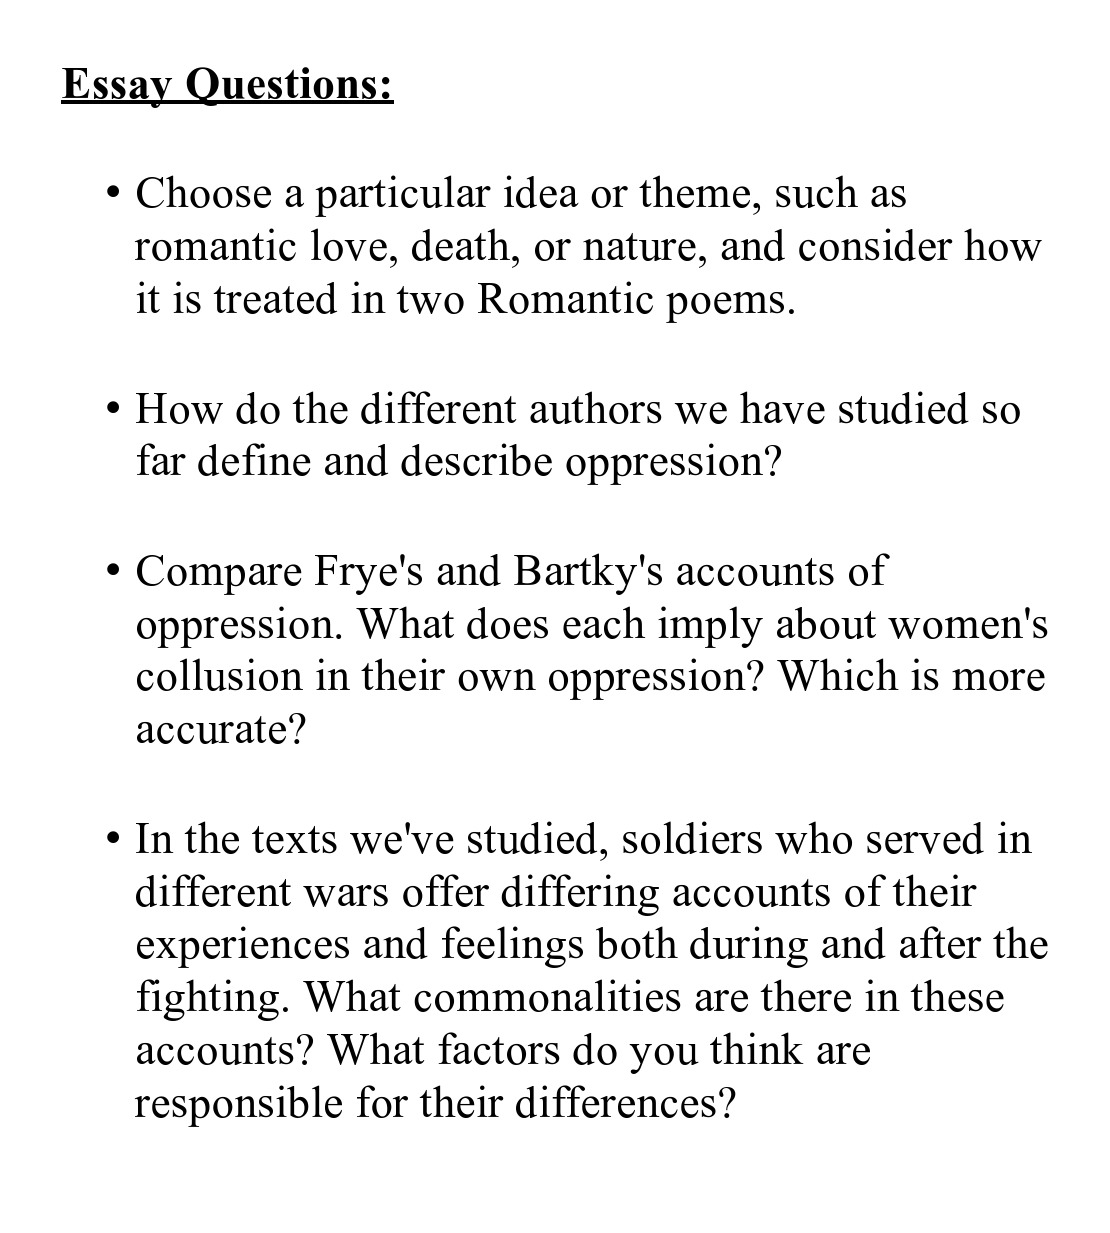 018 Essay Questions How To Write Theme Marvelous A Hook For Analysis Full